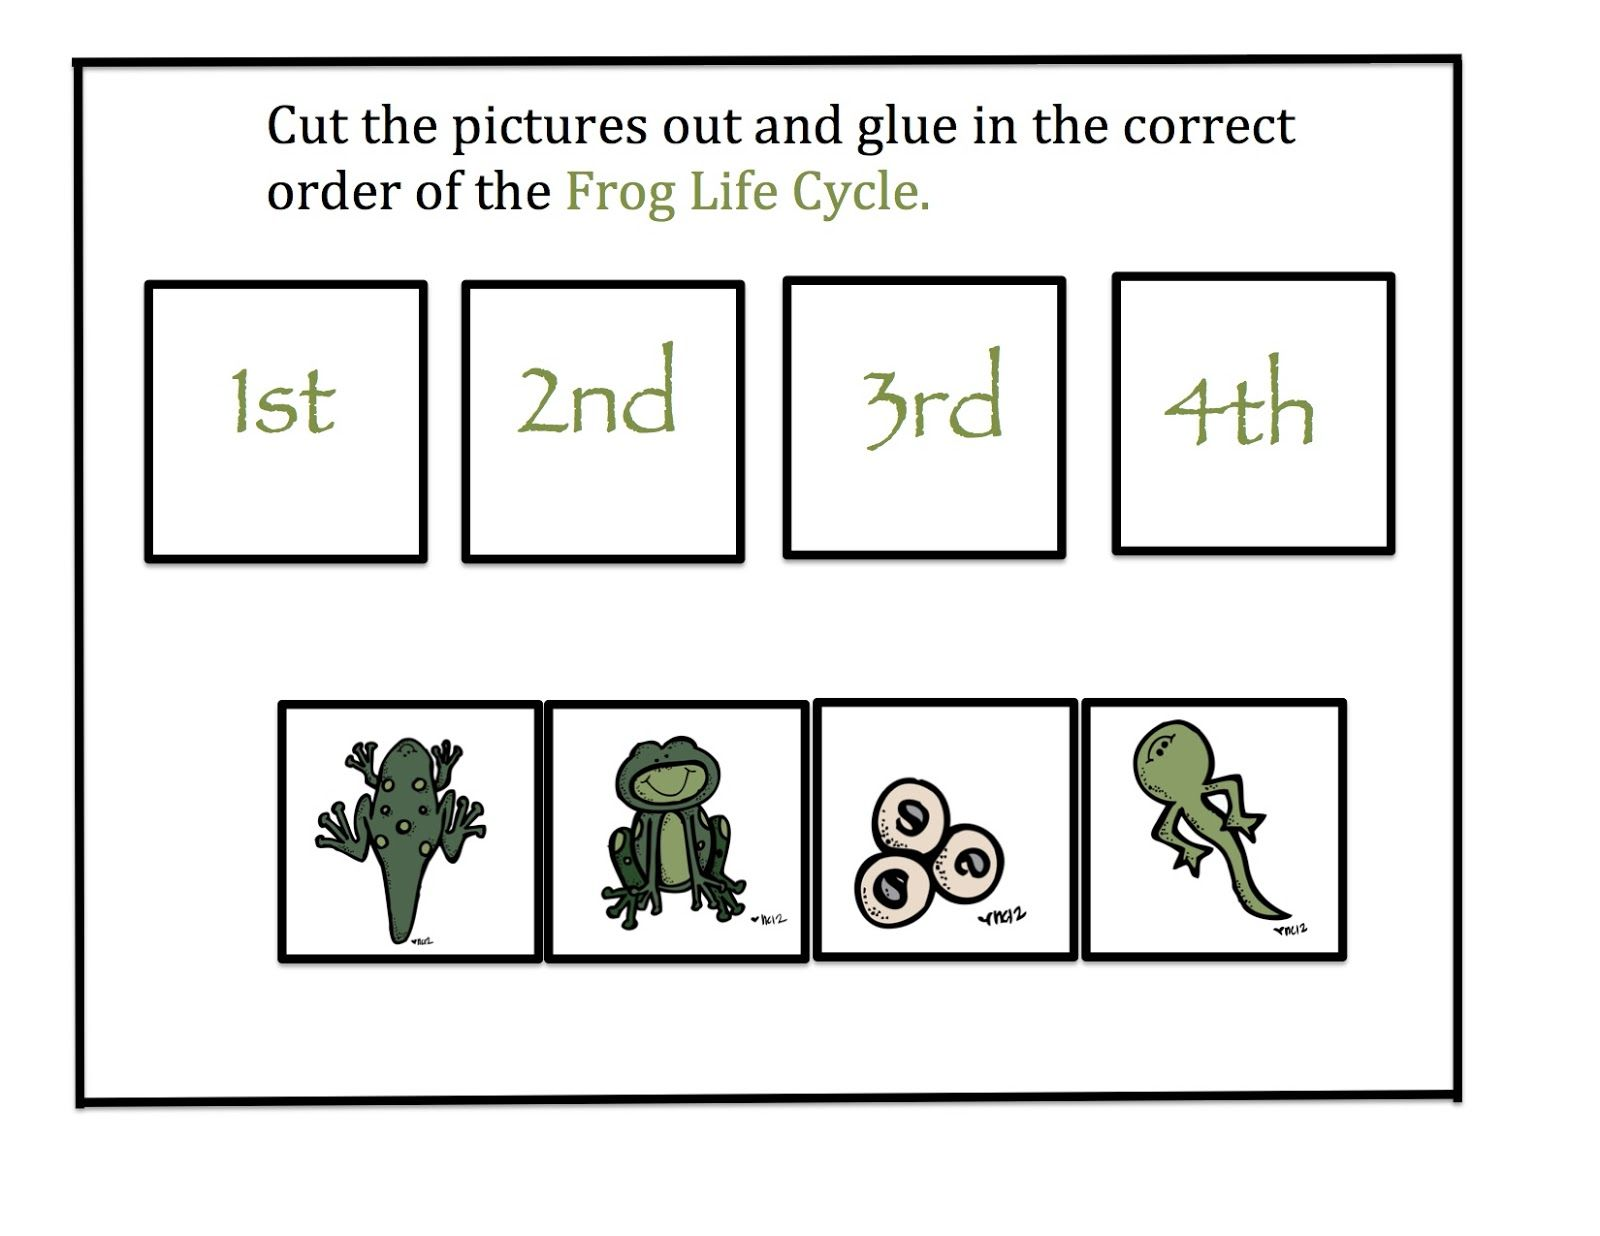 Frog Life Cycle Printable 18 Pages Of Fun